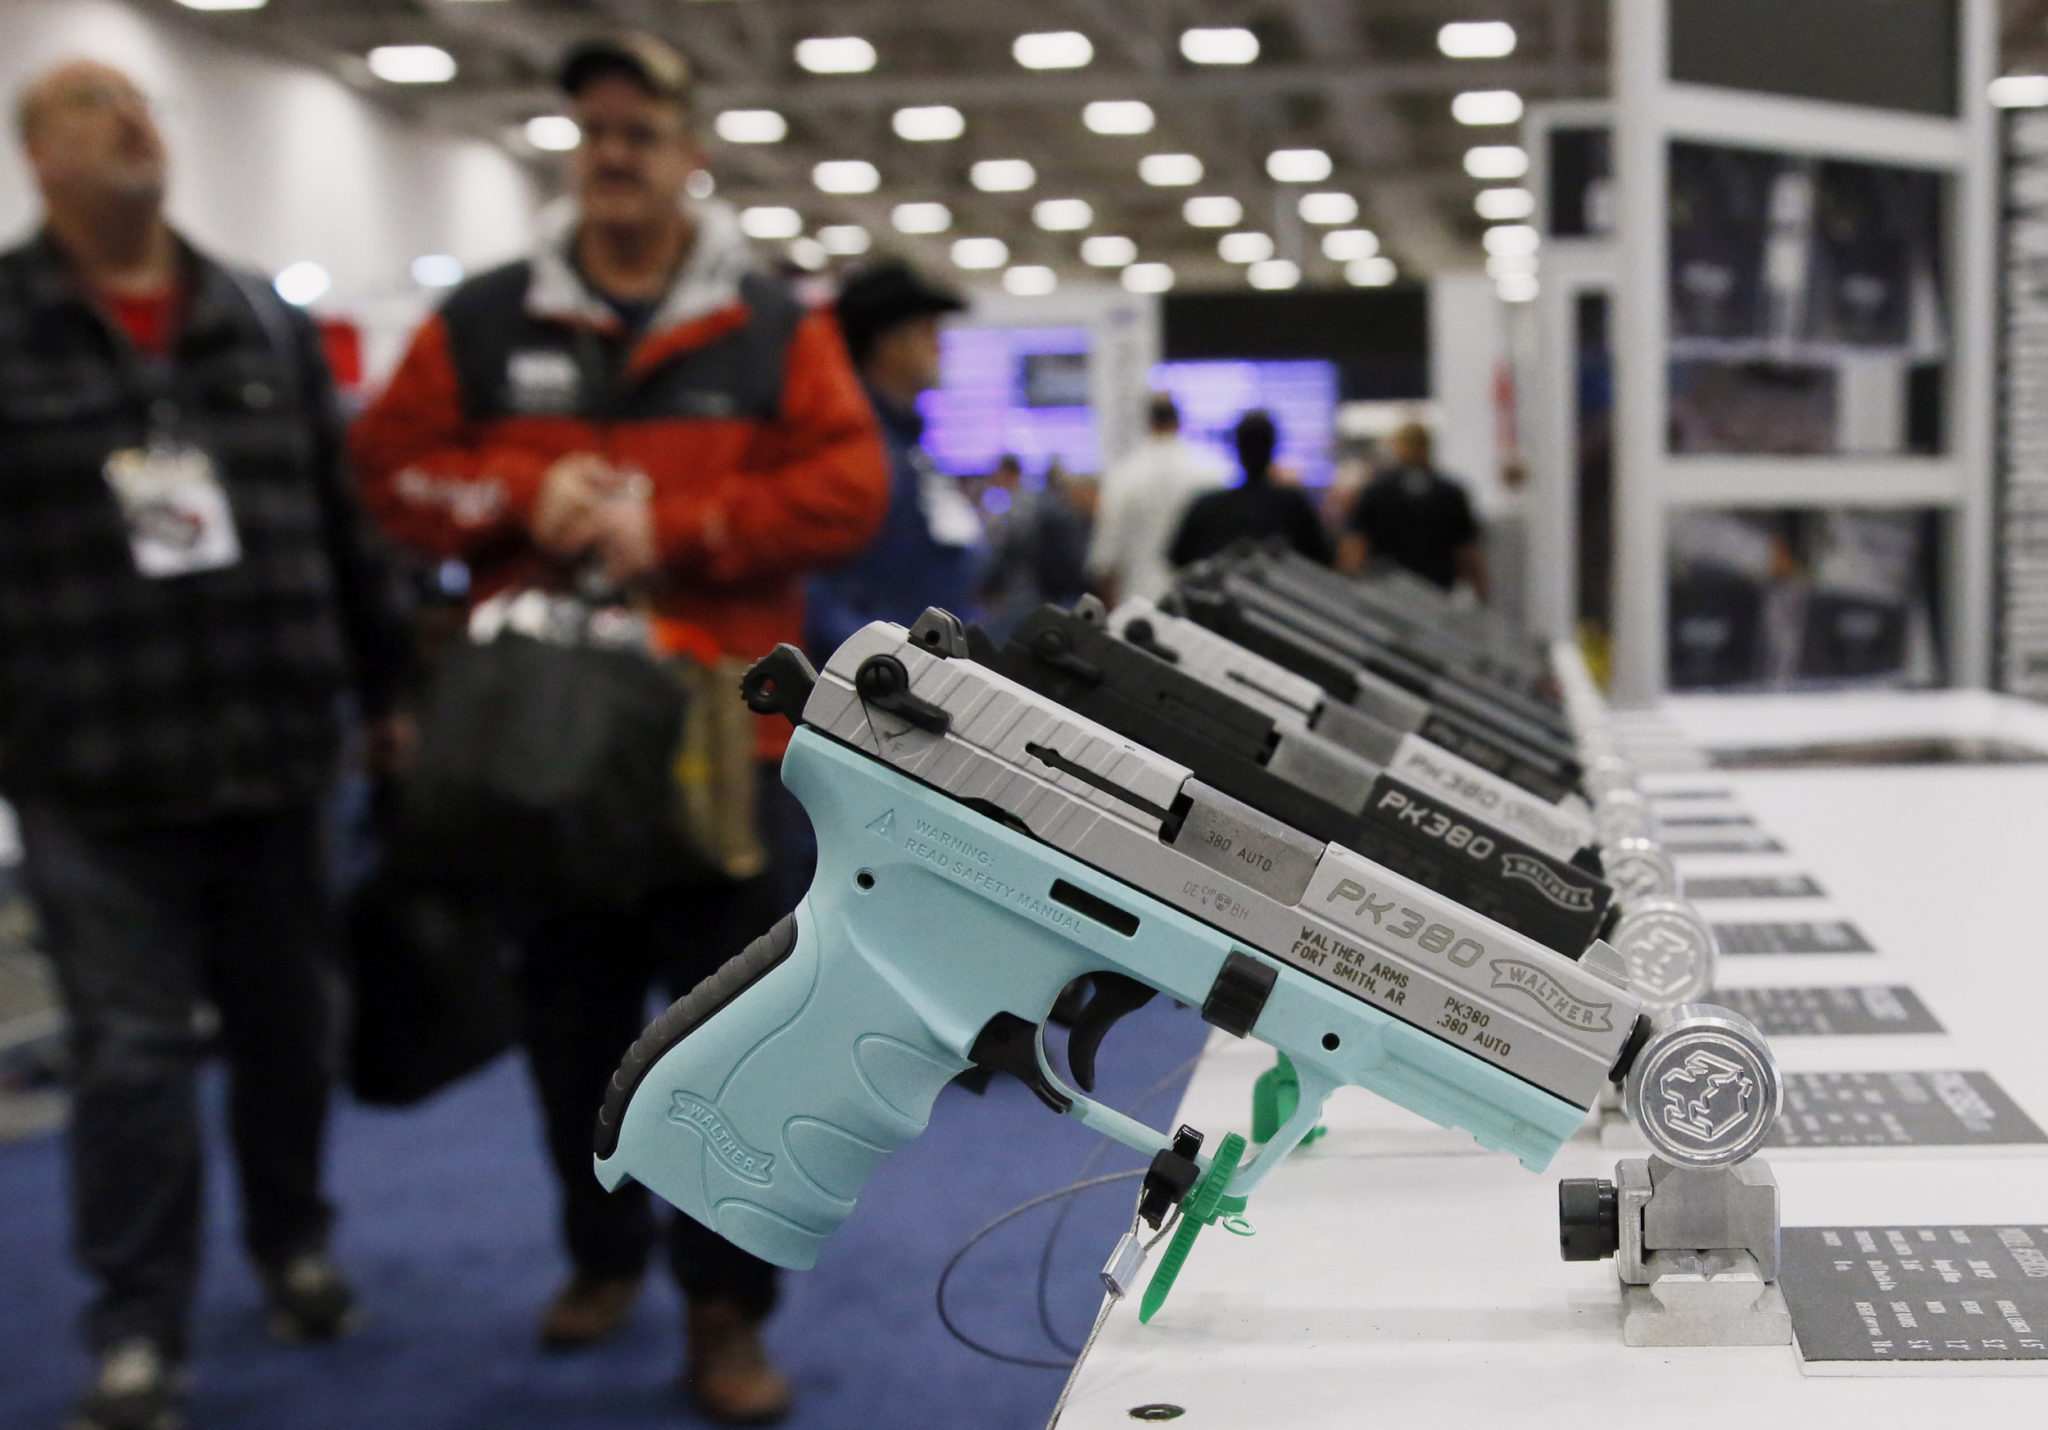 NRA Beset by Infighting Over Whether it Has Strayed Too Far